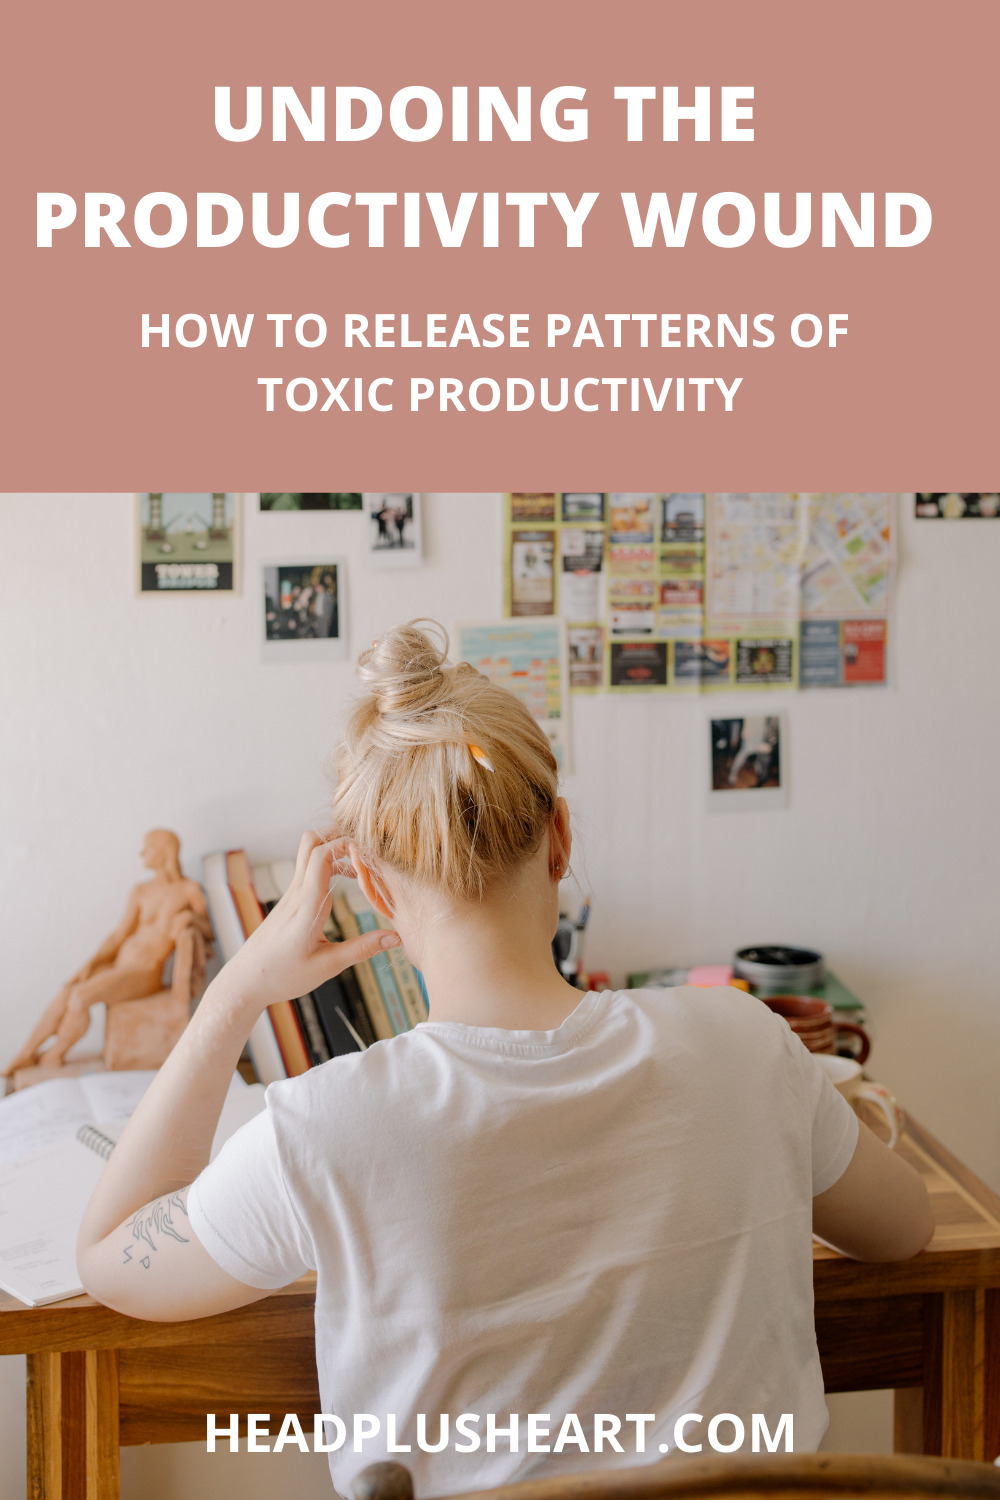 Many of us carry wounding of toxic productivity. Do you have the productivity wound? Here are some practices to undo conditioning.